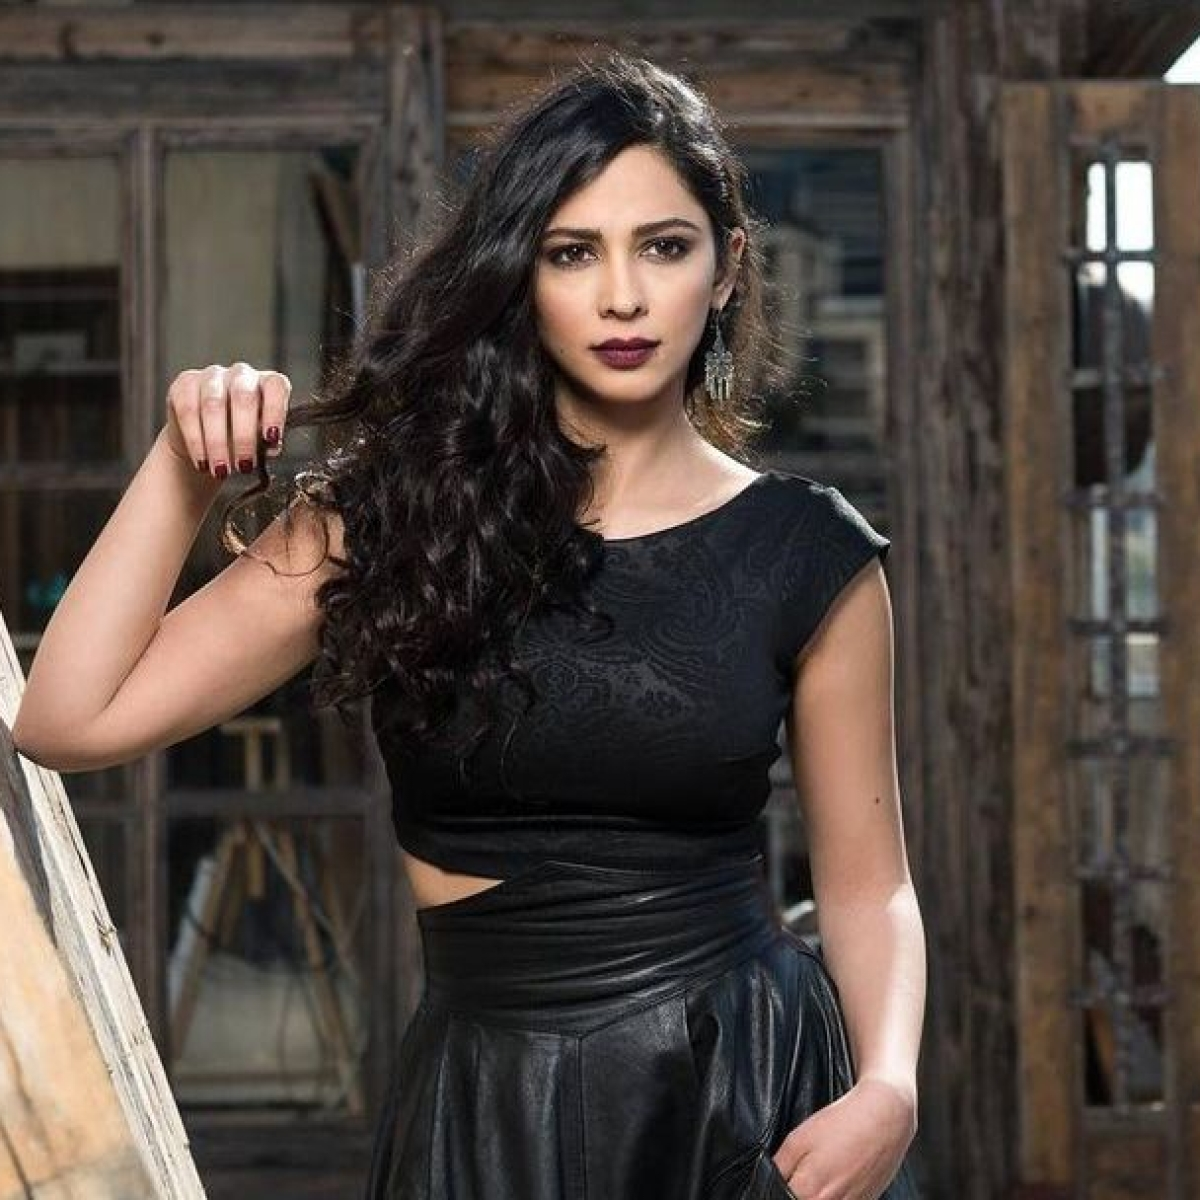 'Baghdad Central' actress Maisa Abd Elhadi shot by Israeli police during protest